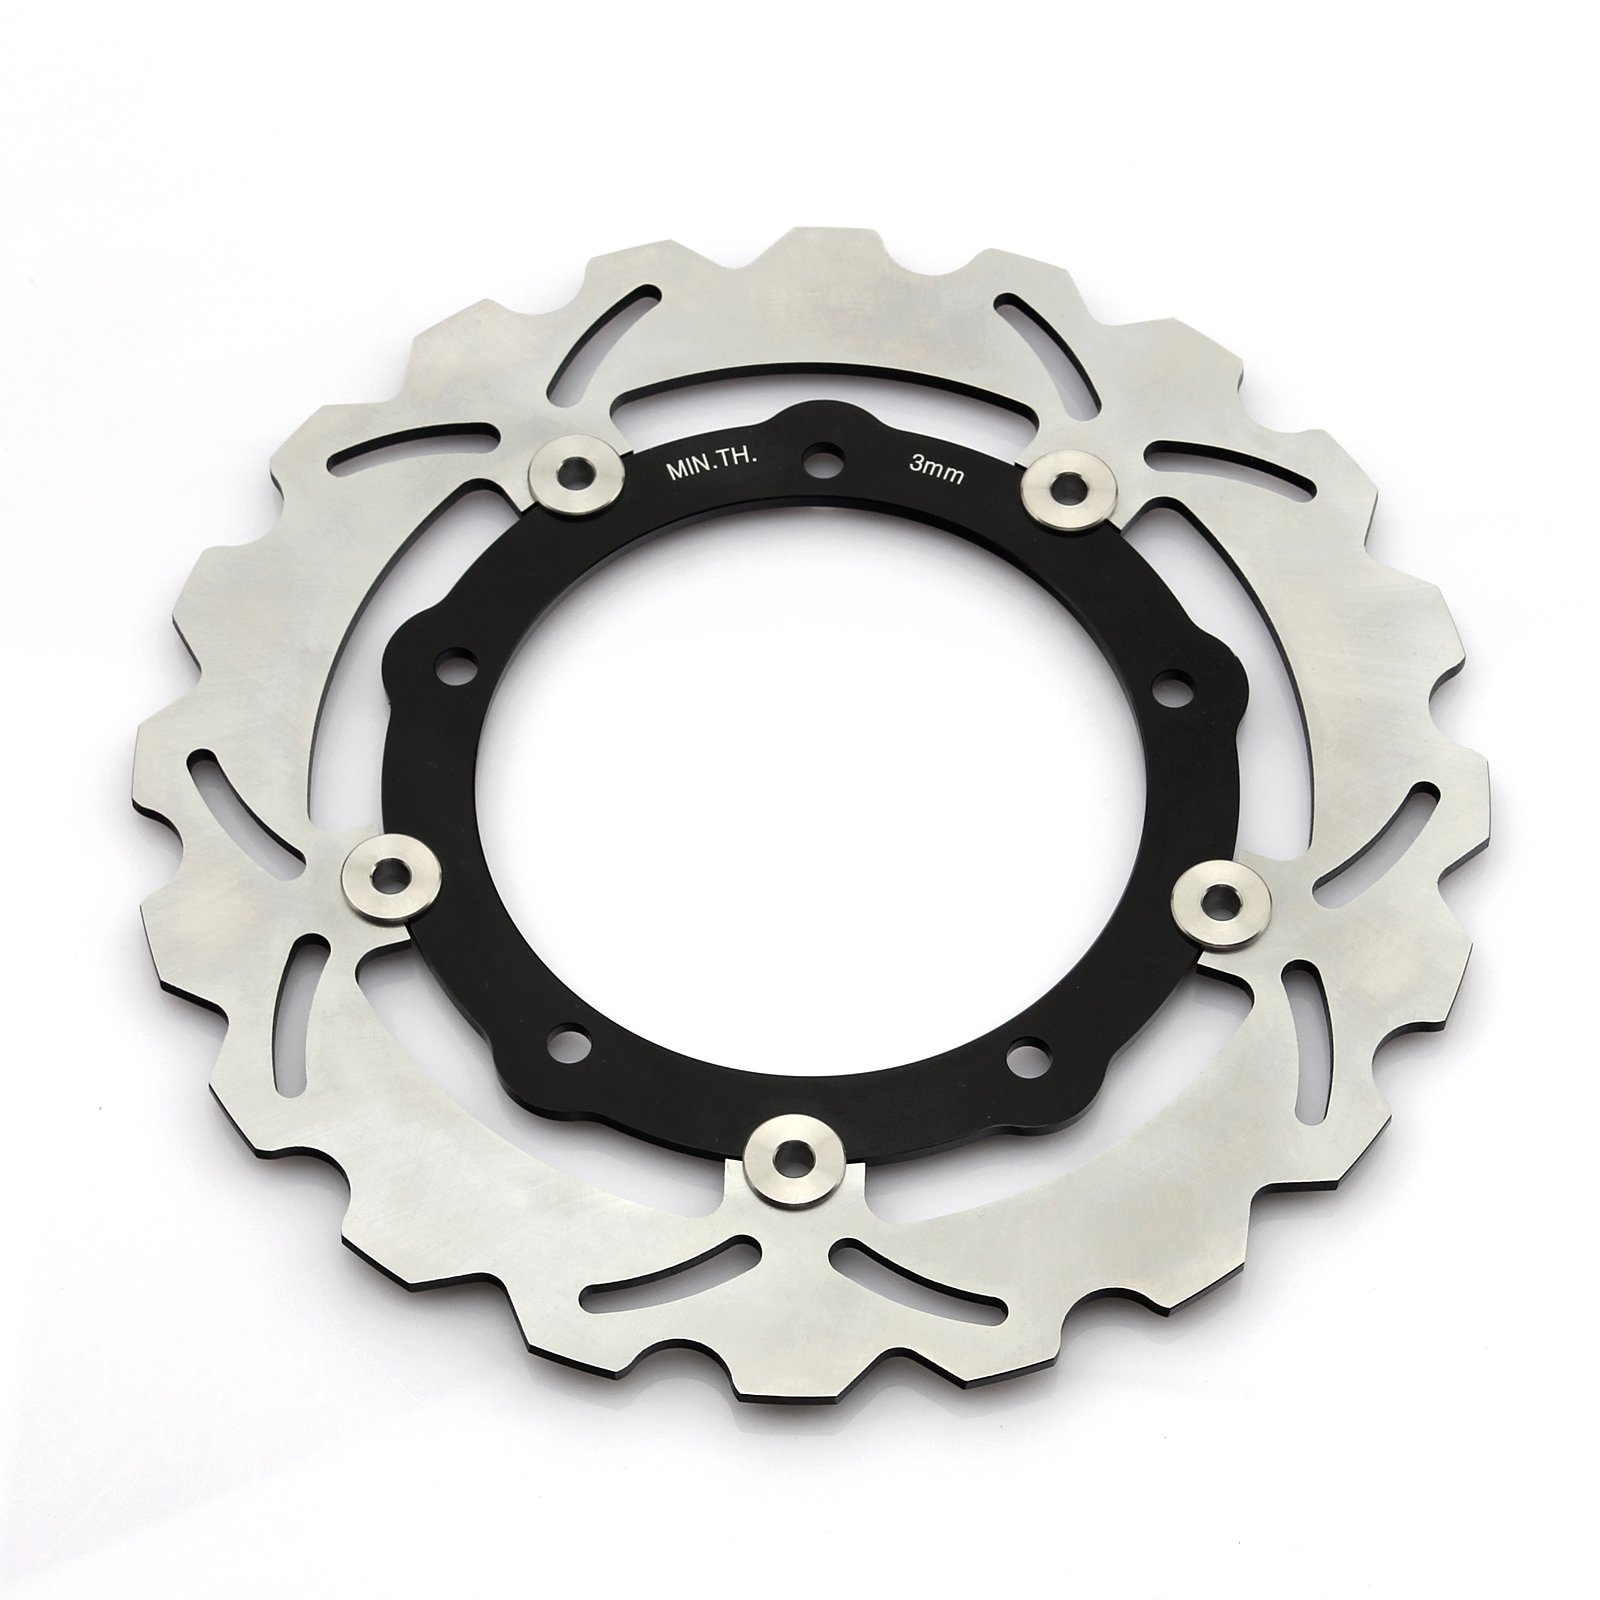 1 Pair Front Brake Rotors for Yamaha T-Max XP 530 2012 2013 2014 2015 YP125R YP250 ABS Sport by TARAZON (Image #3)